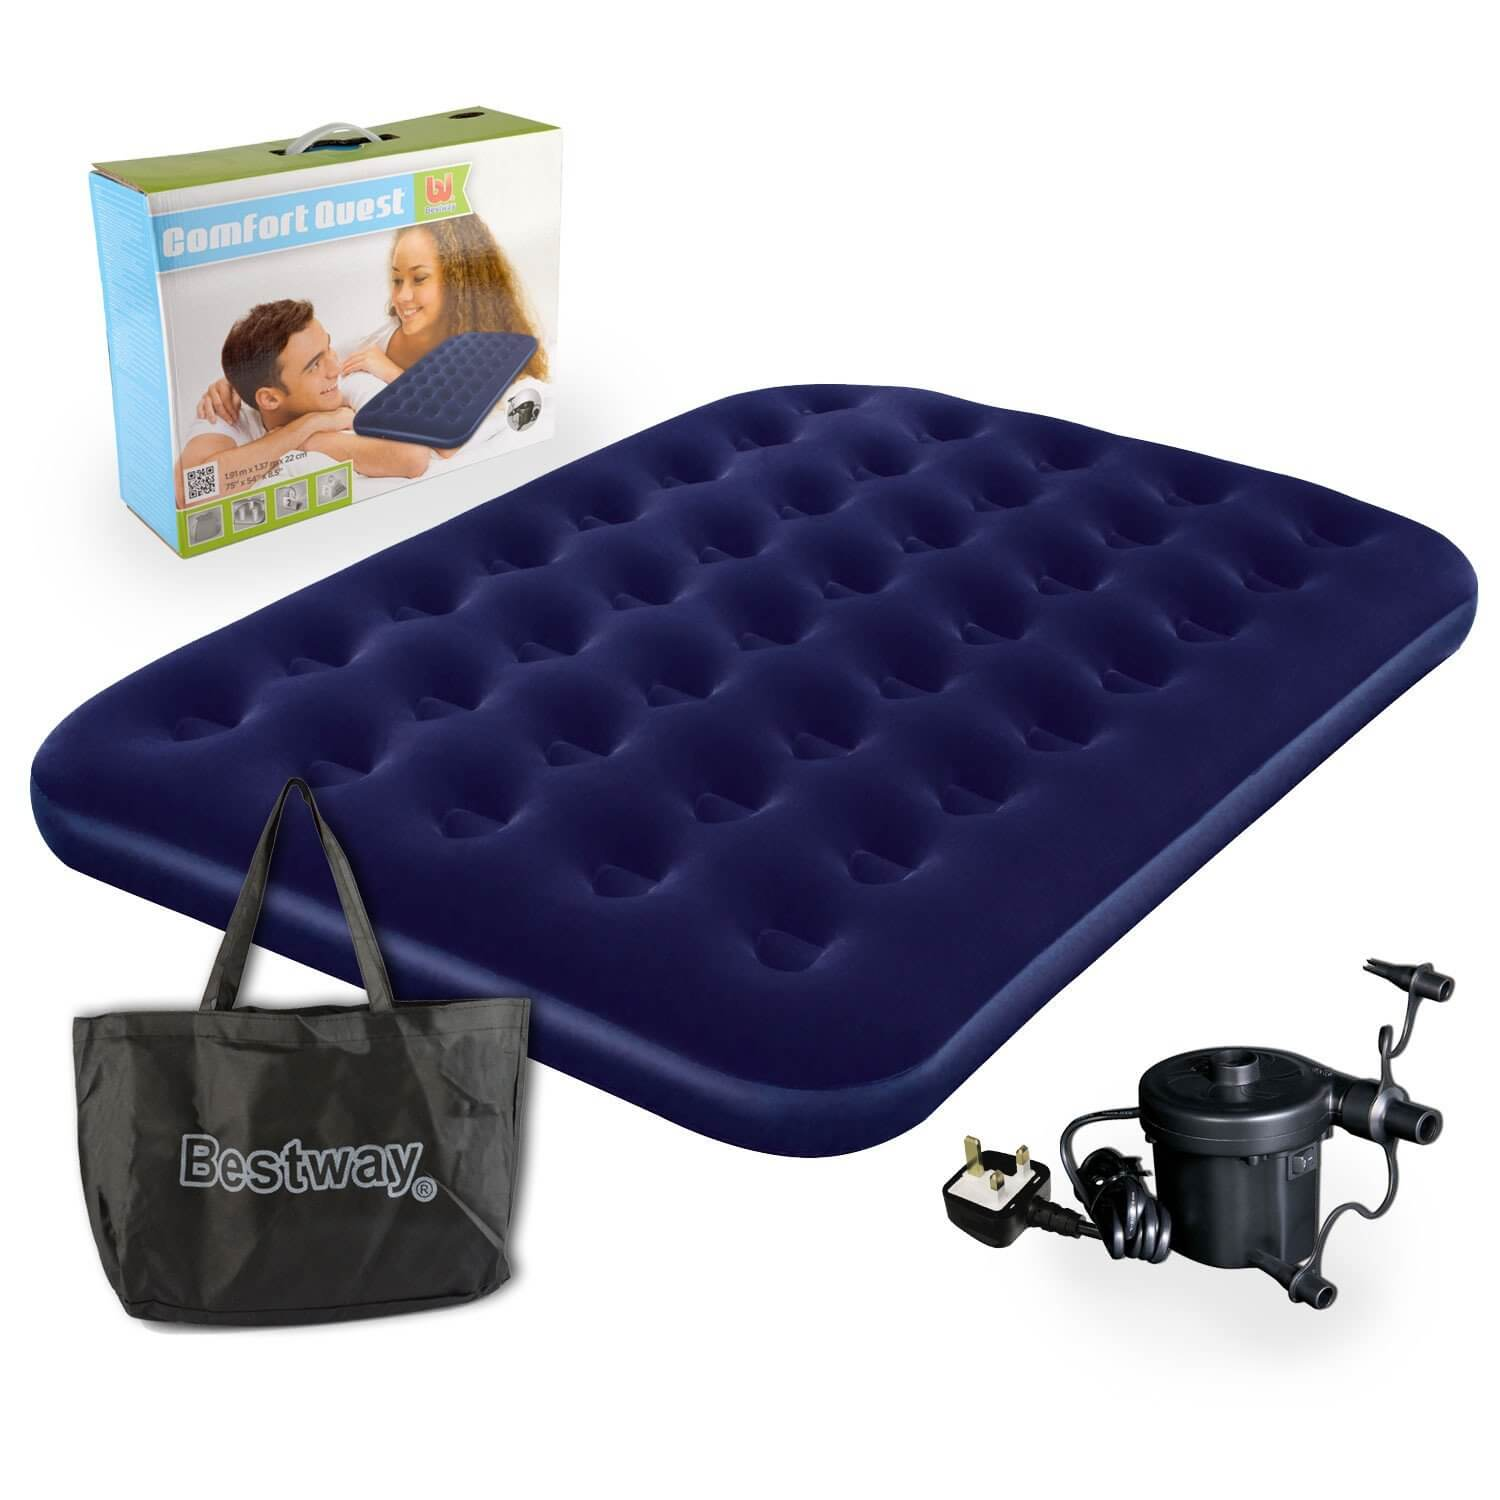 Bestway Comfort Quest Double Flocked Air Bed